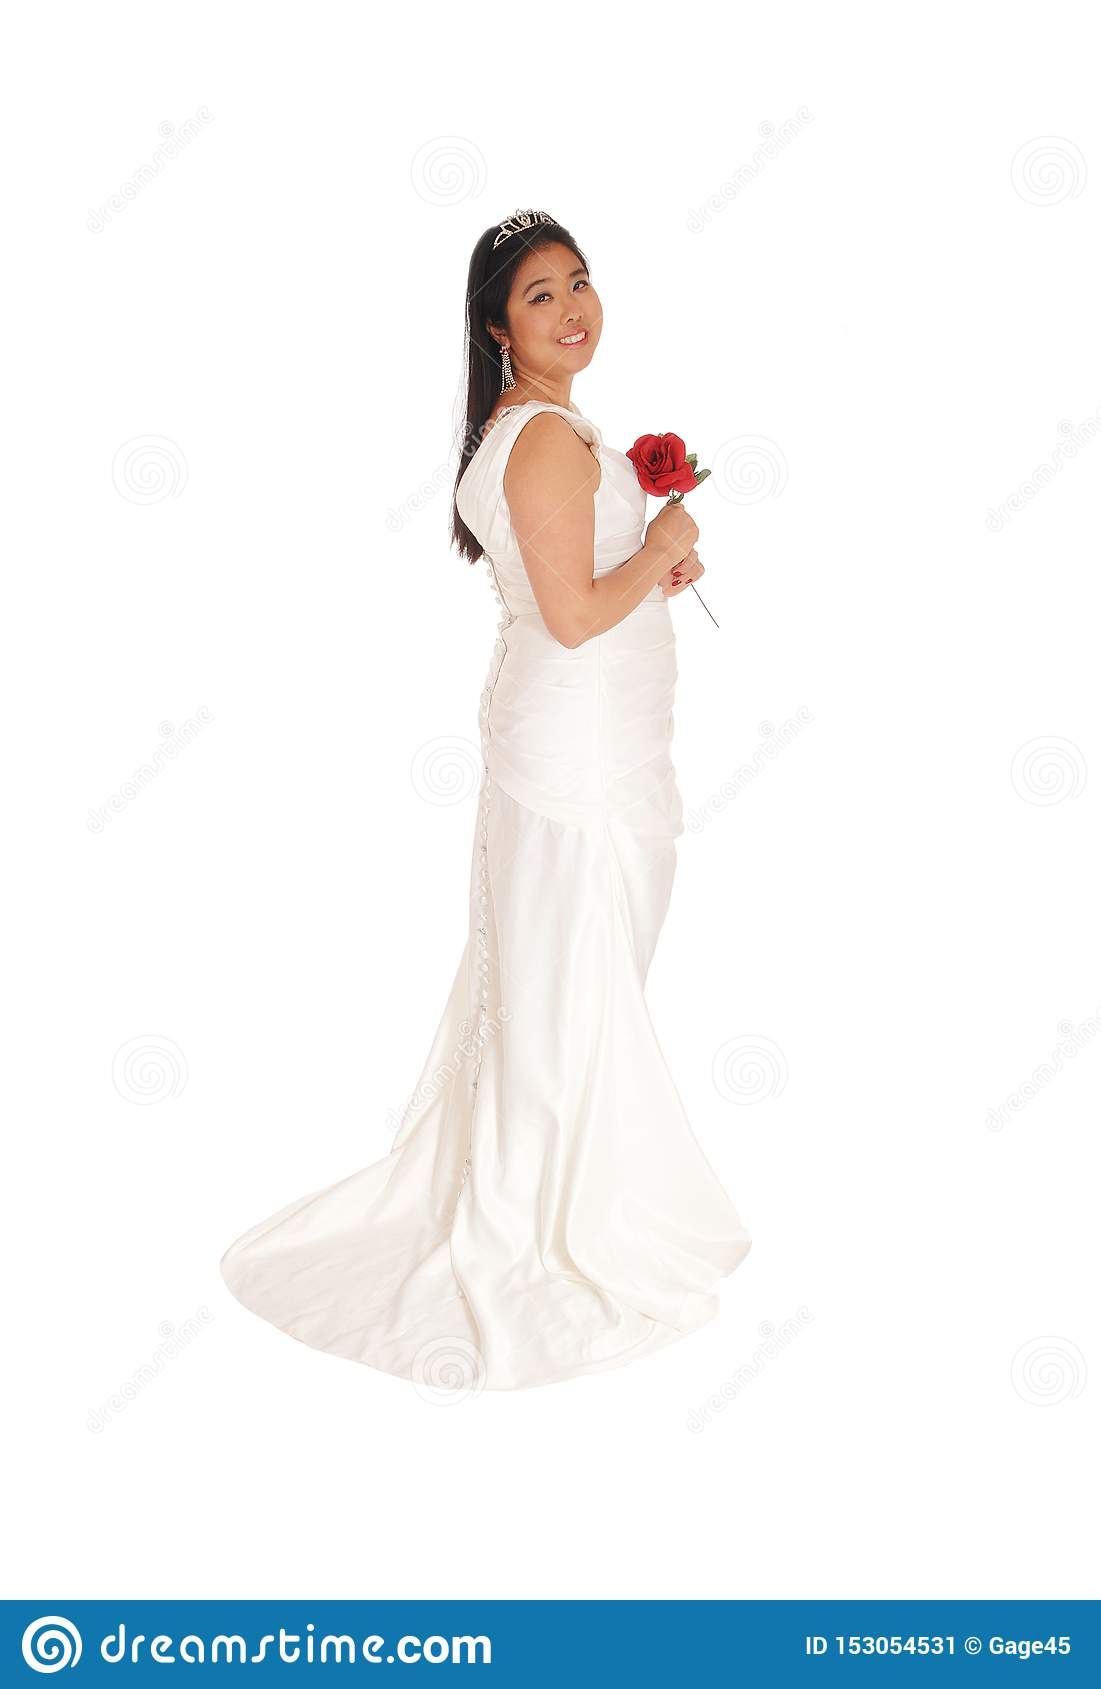 https://thumbs.dreamstime.com/z/lovely-bride-standing-white-gown-red-rose-beautiful-chinese-bride-holding-red-rose-standing-white-wedding-153054531.jpg